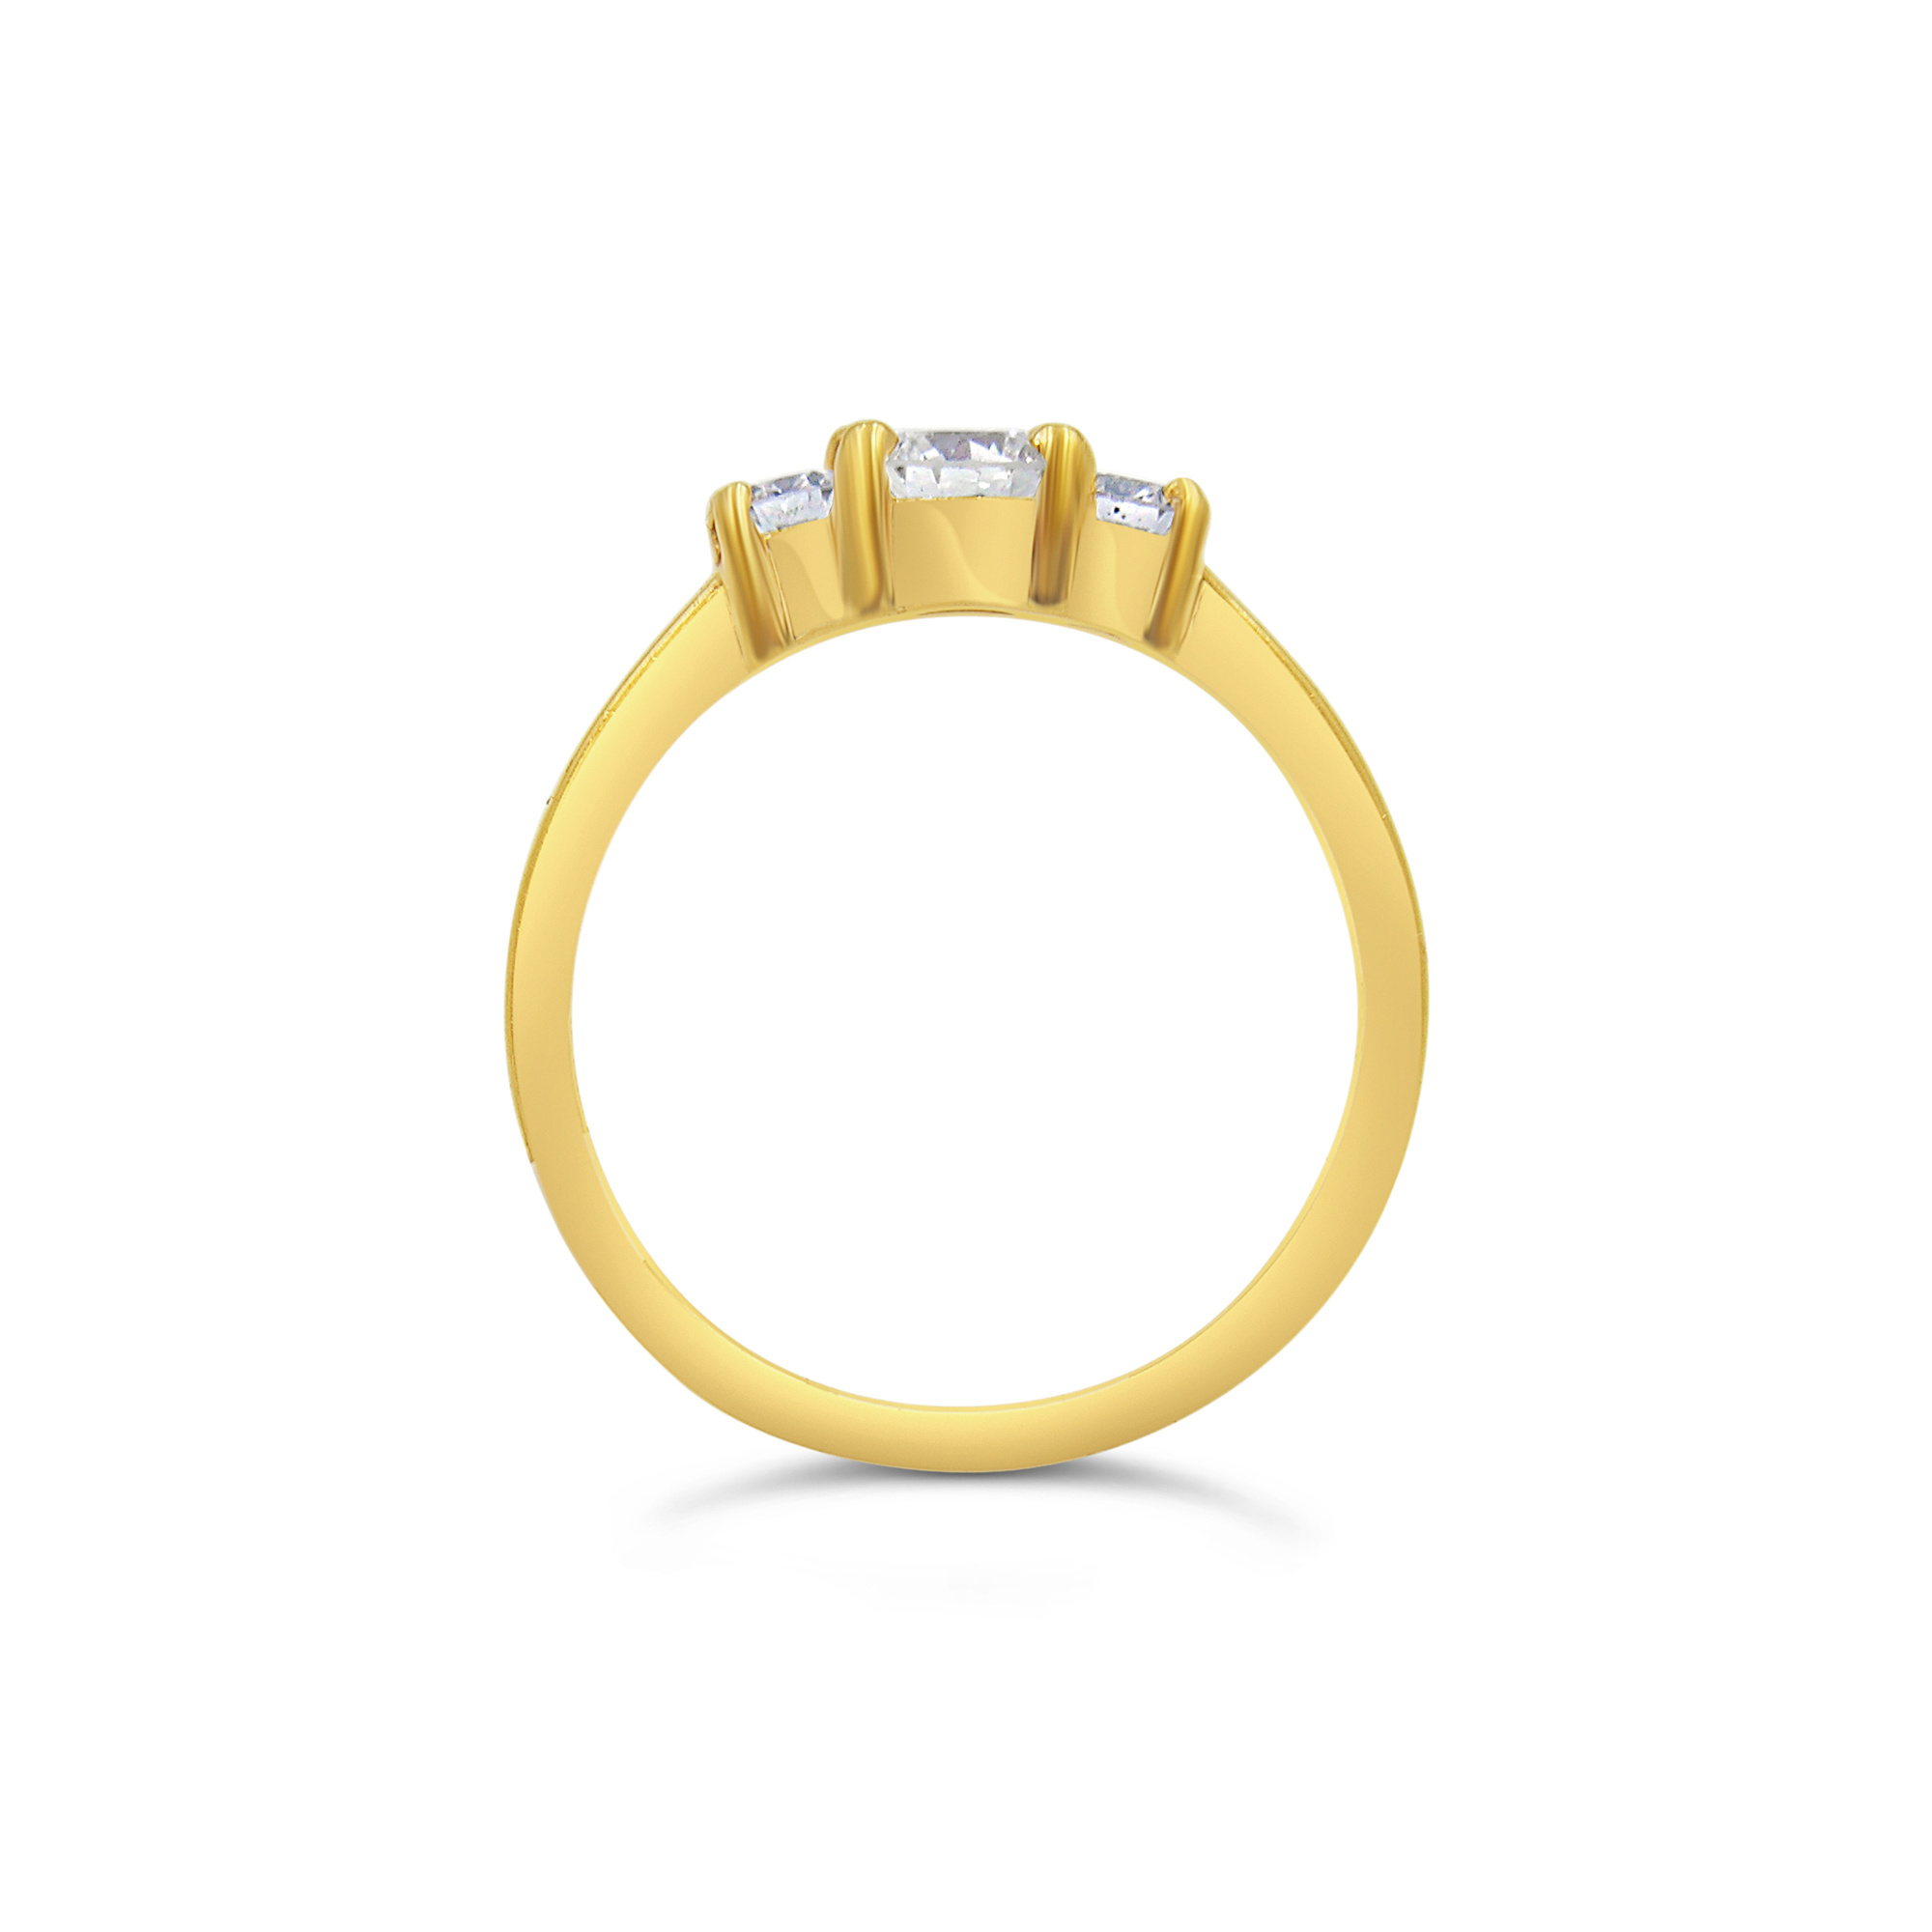 18kt yellow gold trilogy engagement ring with 0.64 ct diamonds